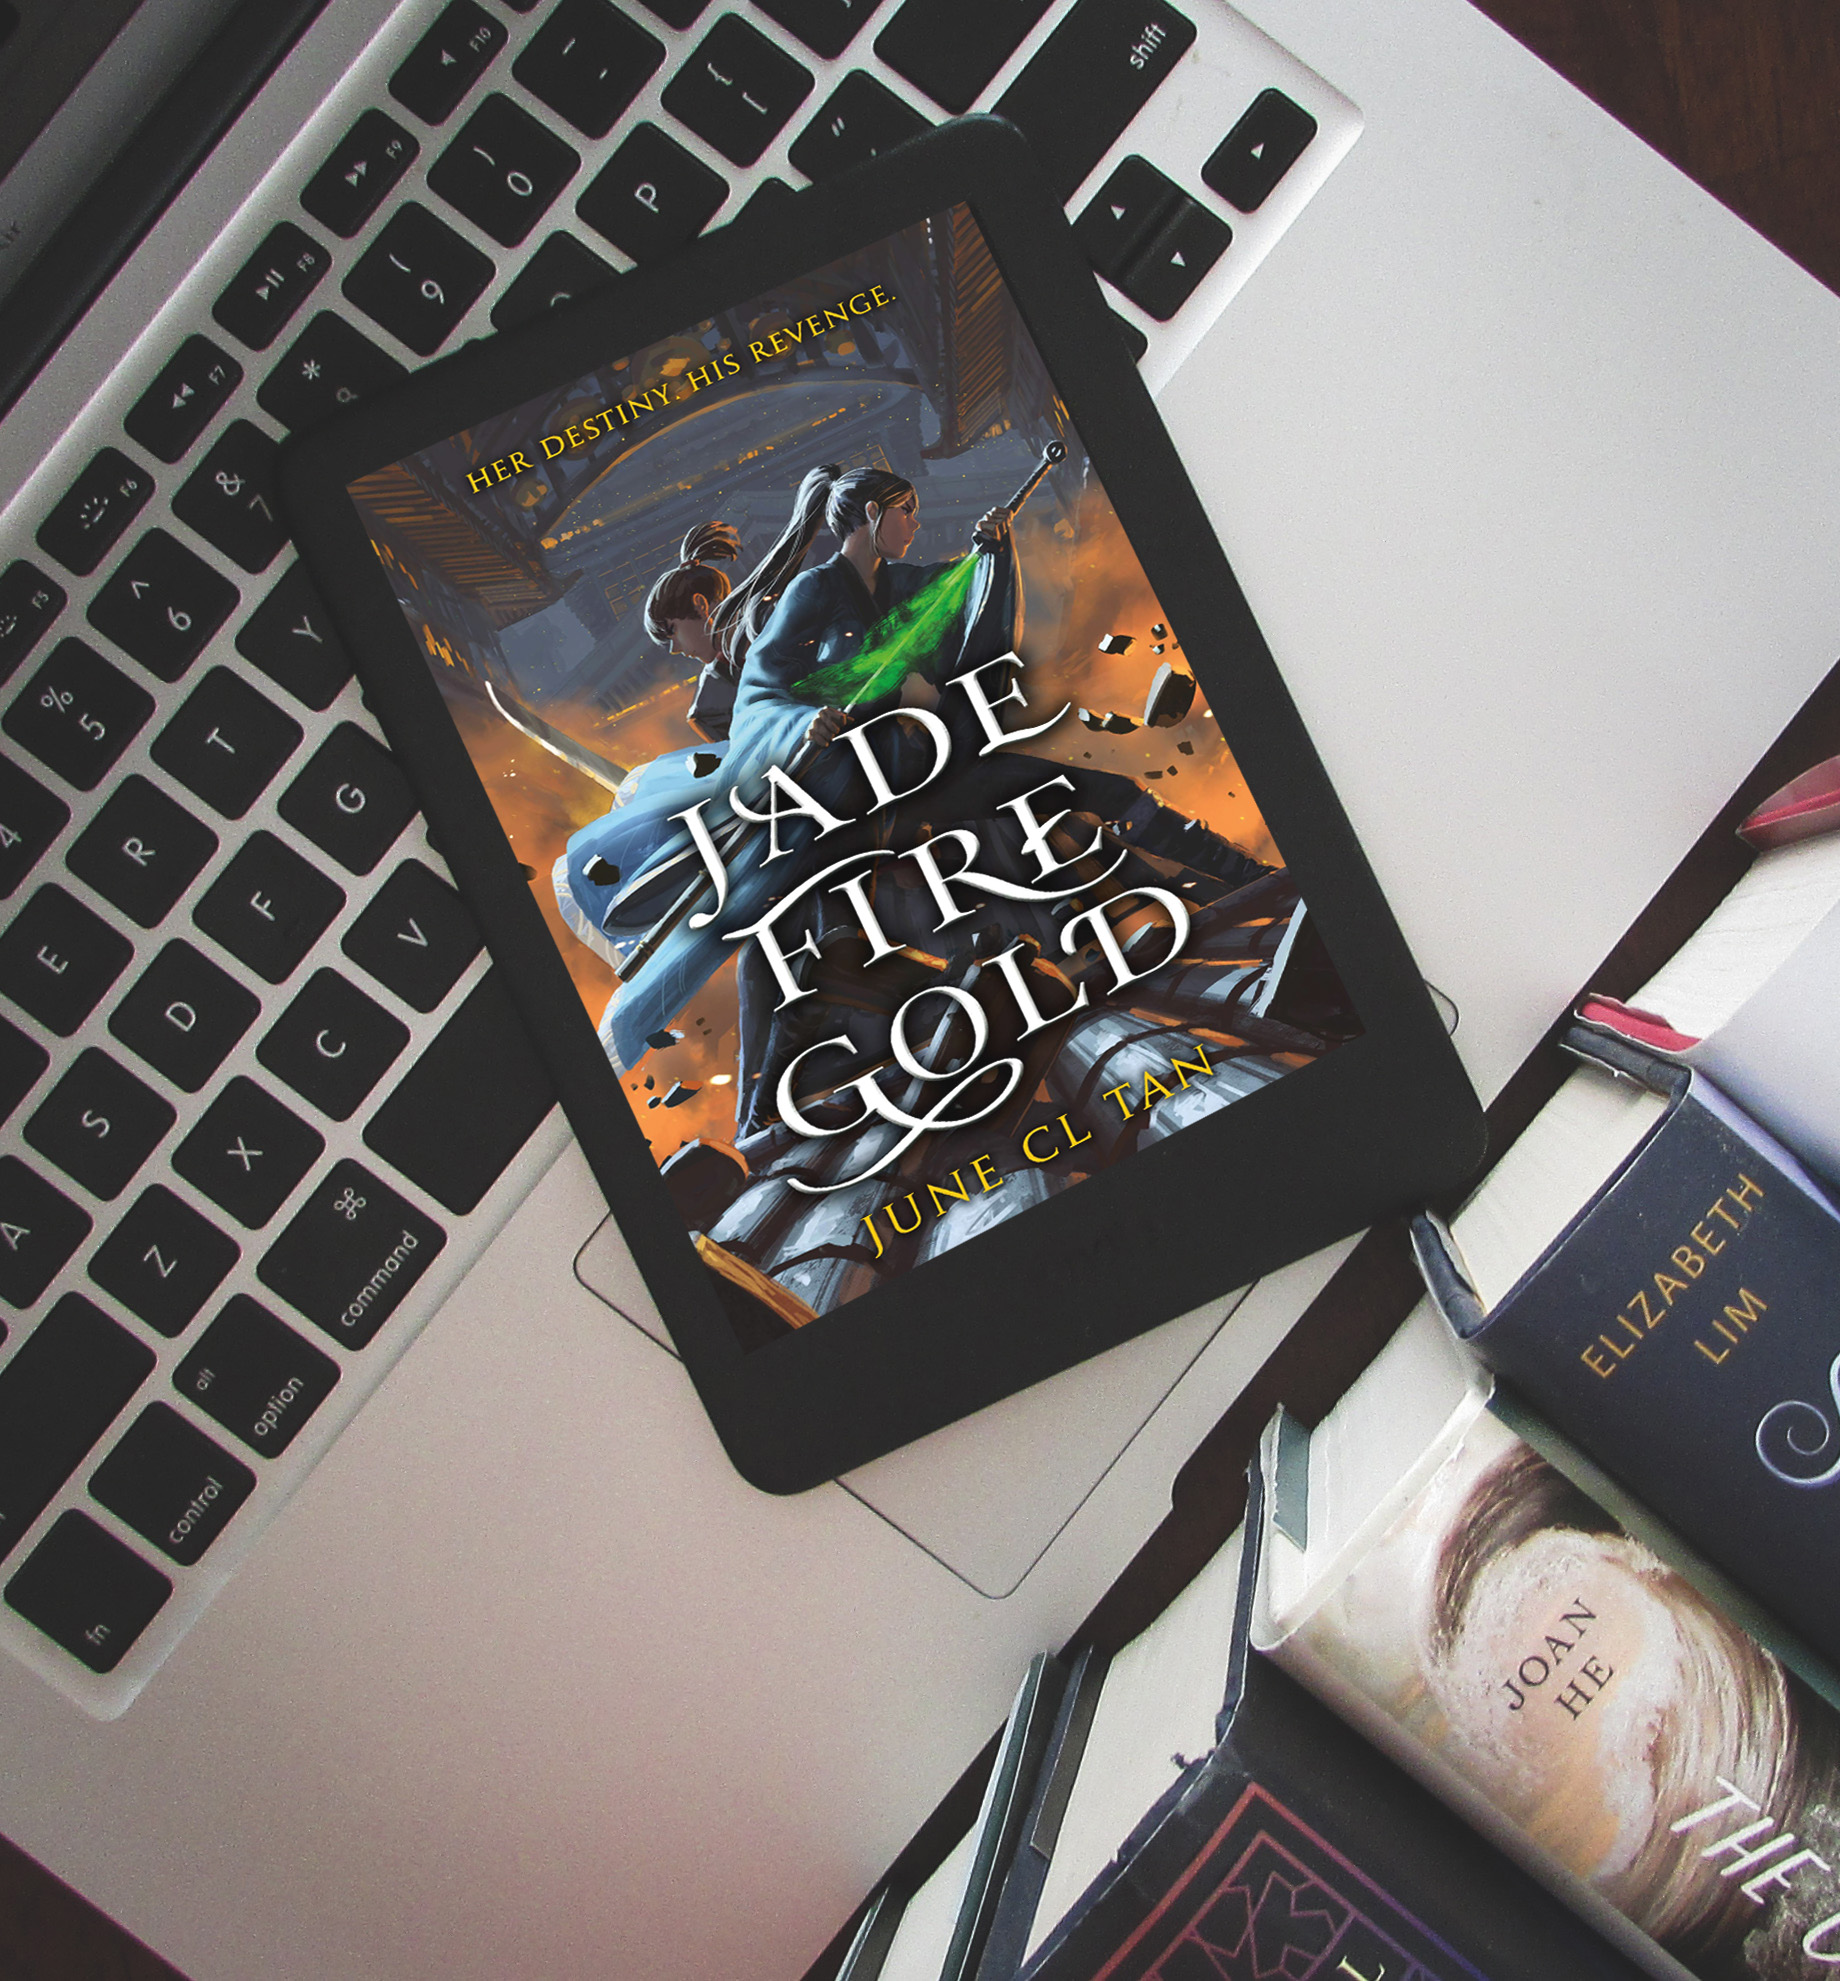 Read more about the article Jade Fire Gold by June CL Tan